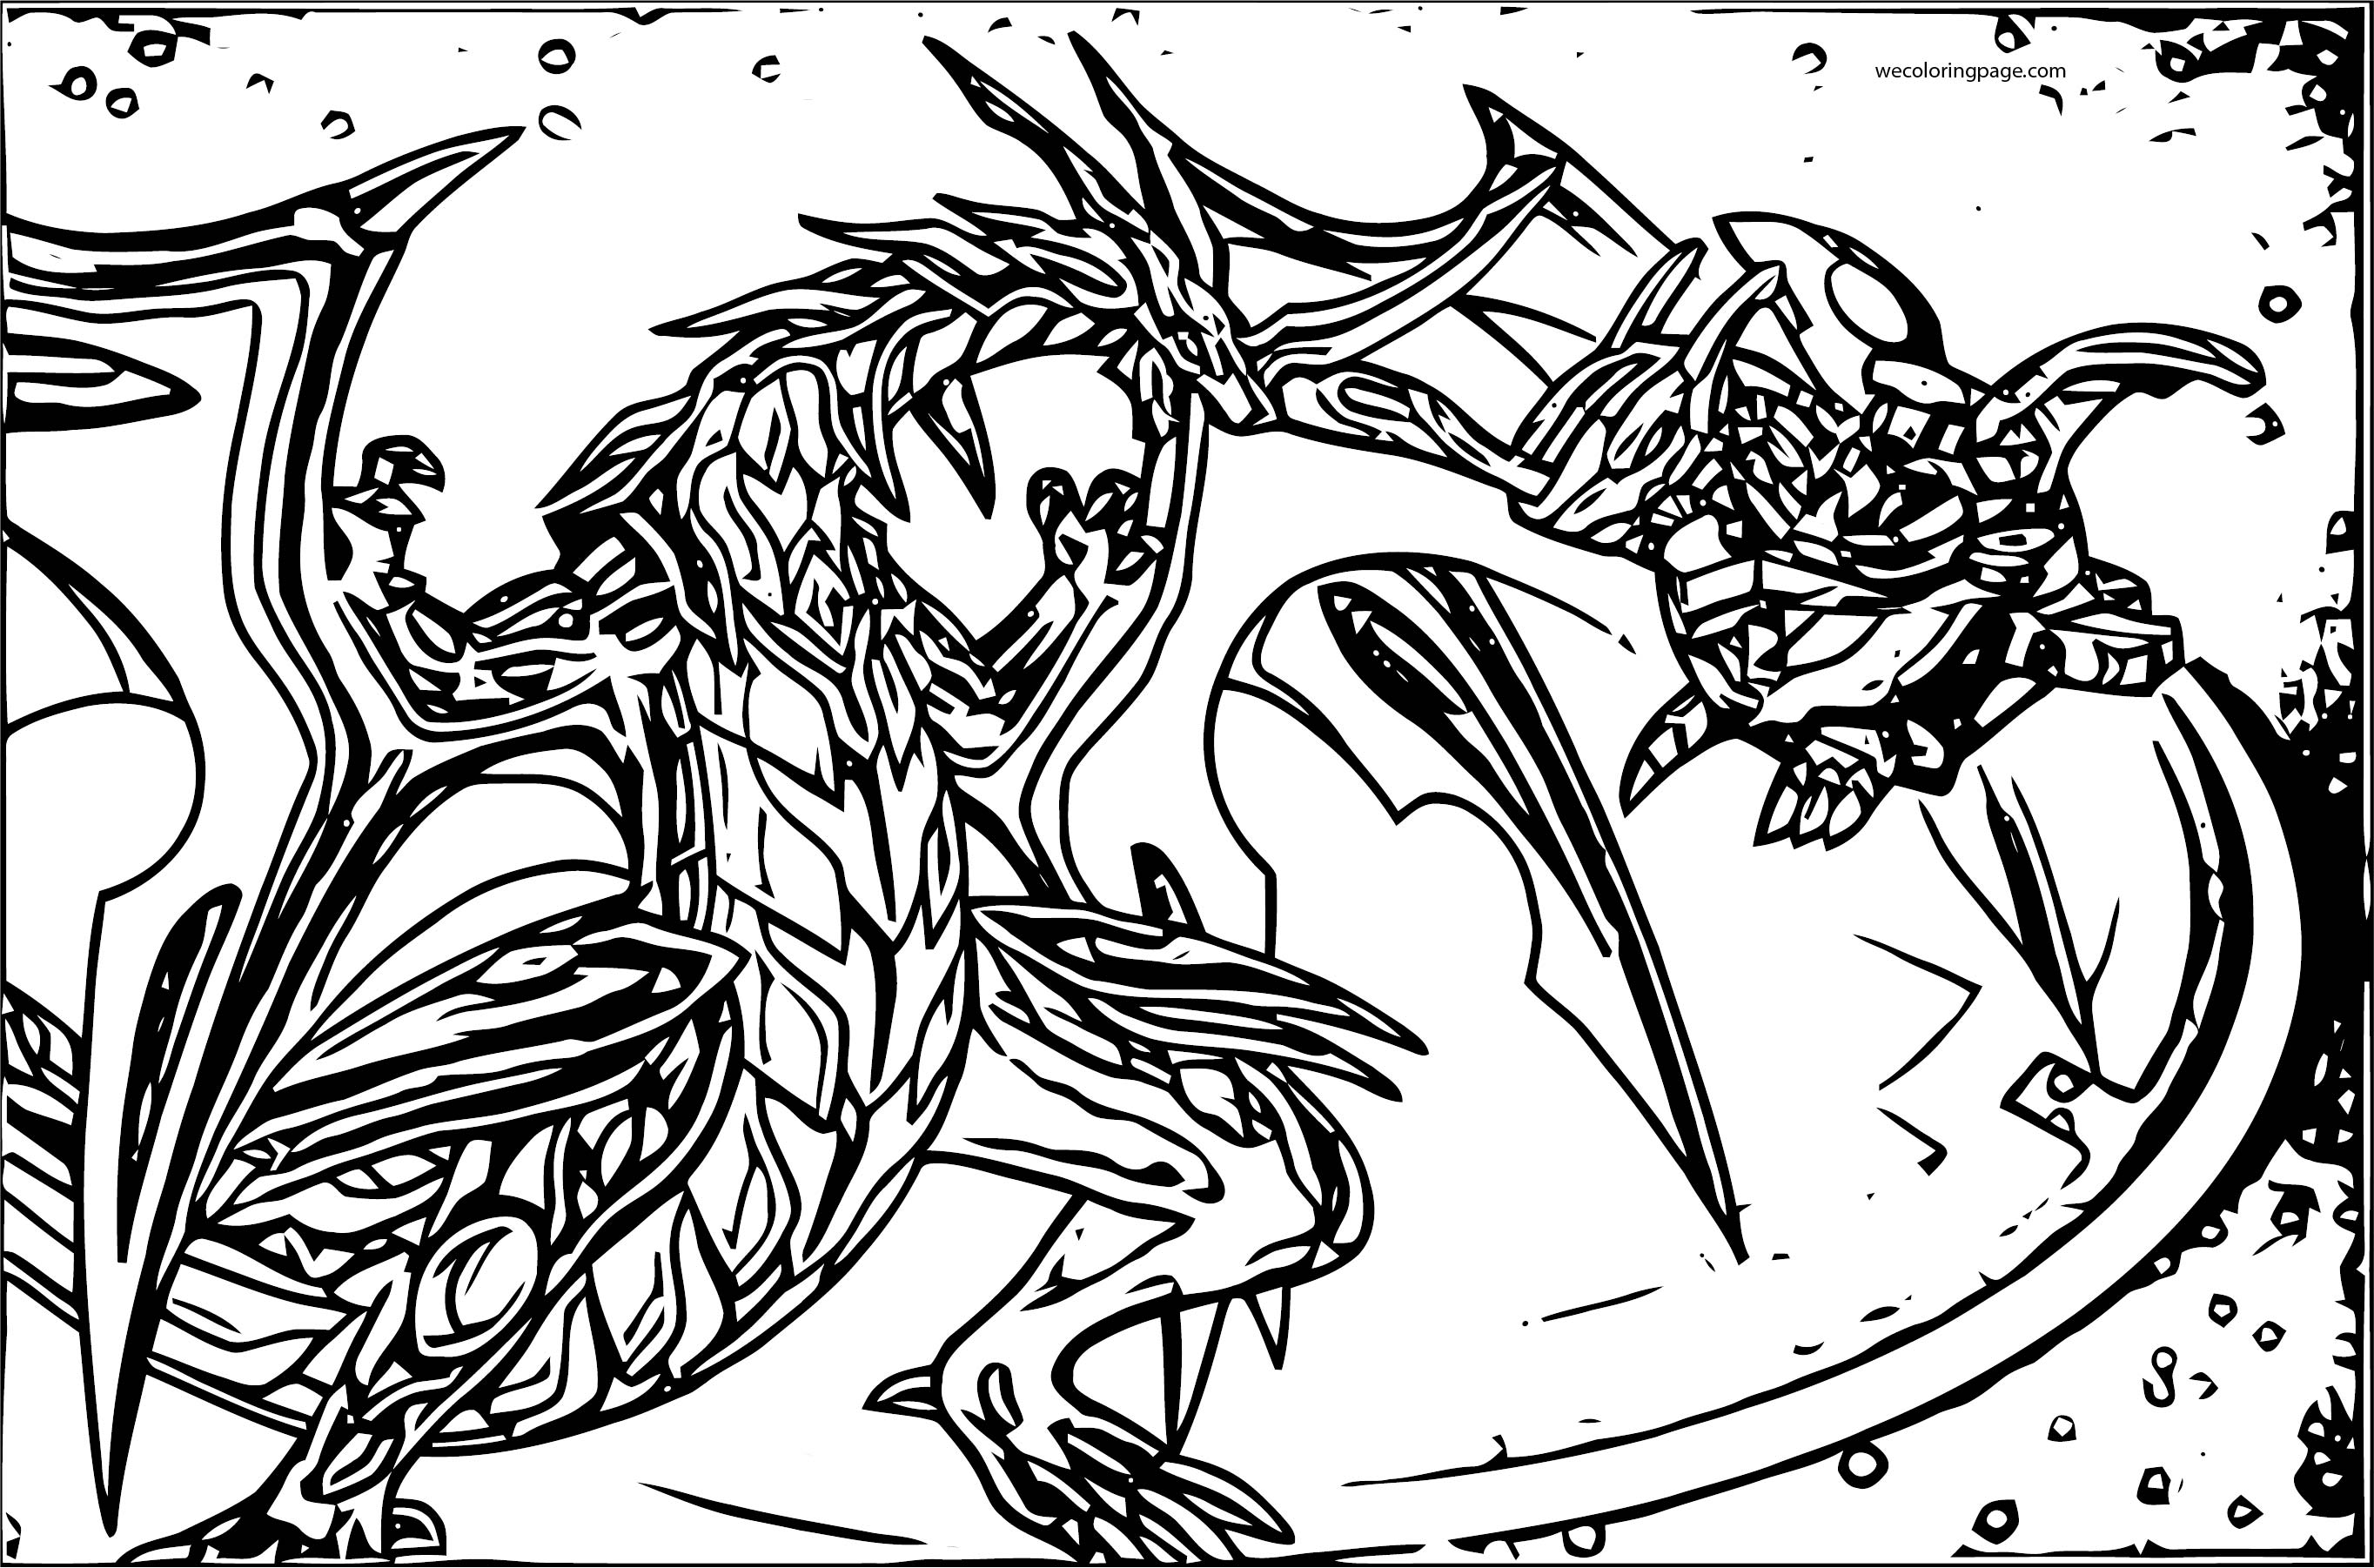 bakugan titanium dragonoid coloring pages - photo#6